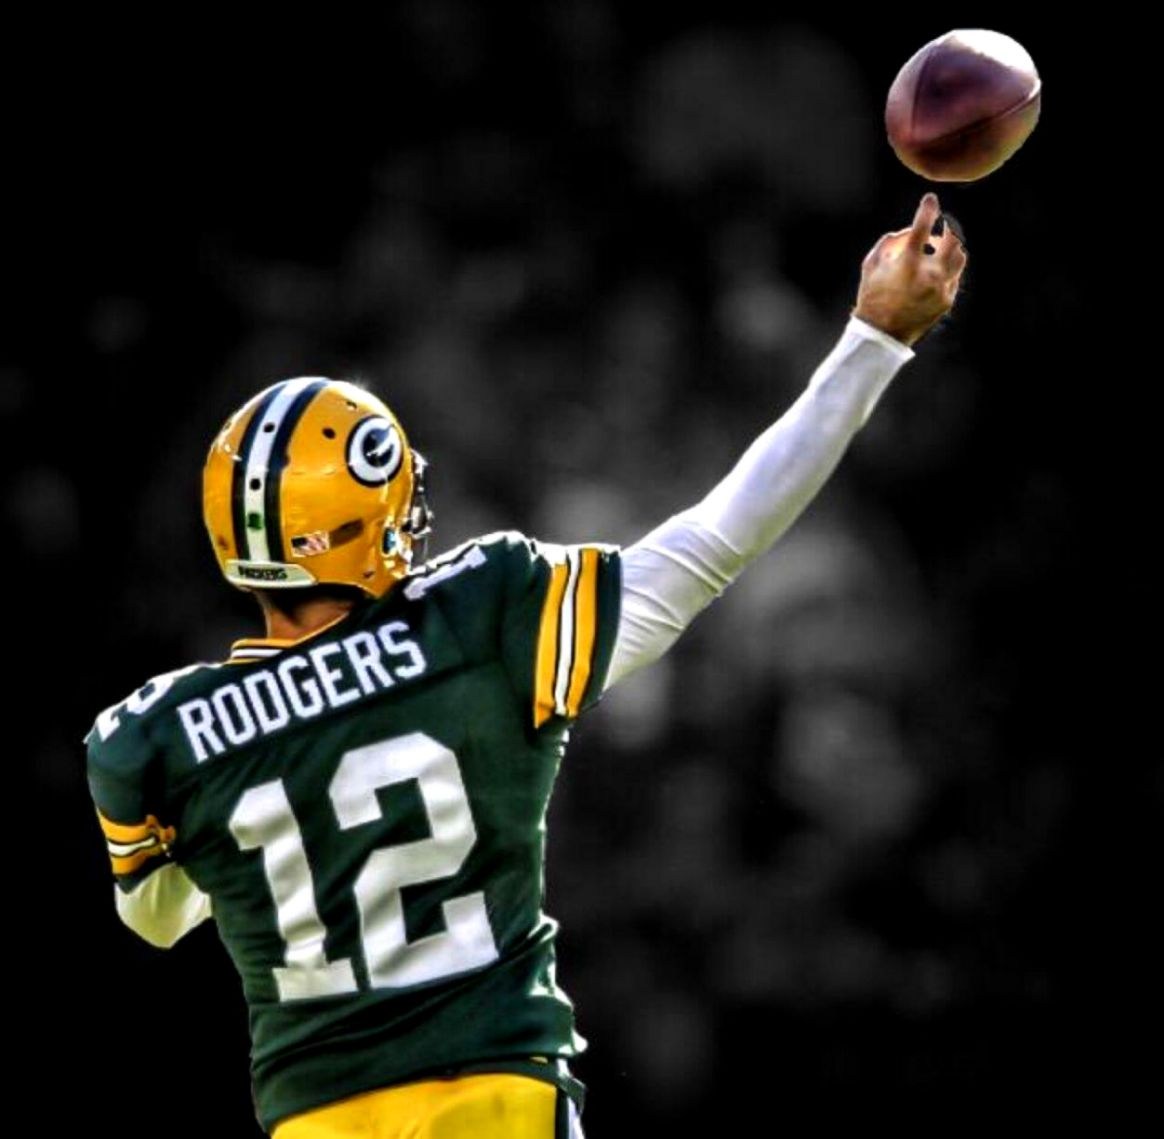 Aaron Rodgers Nfl Football Player Wallpaper Hohomiche